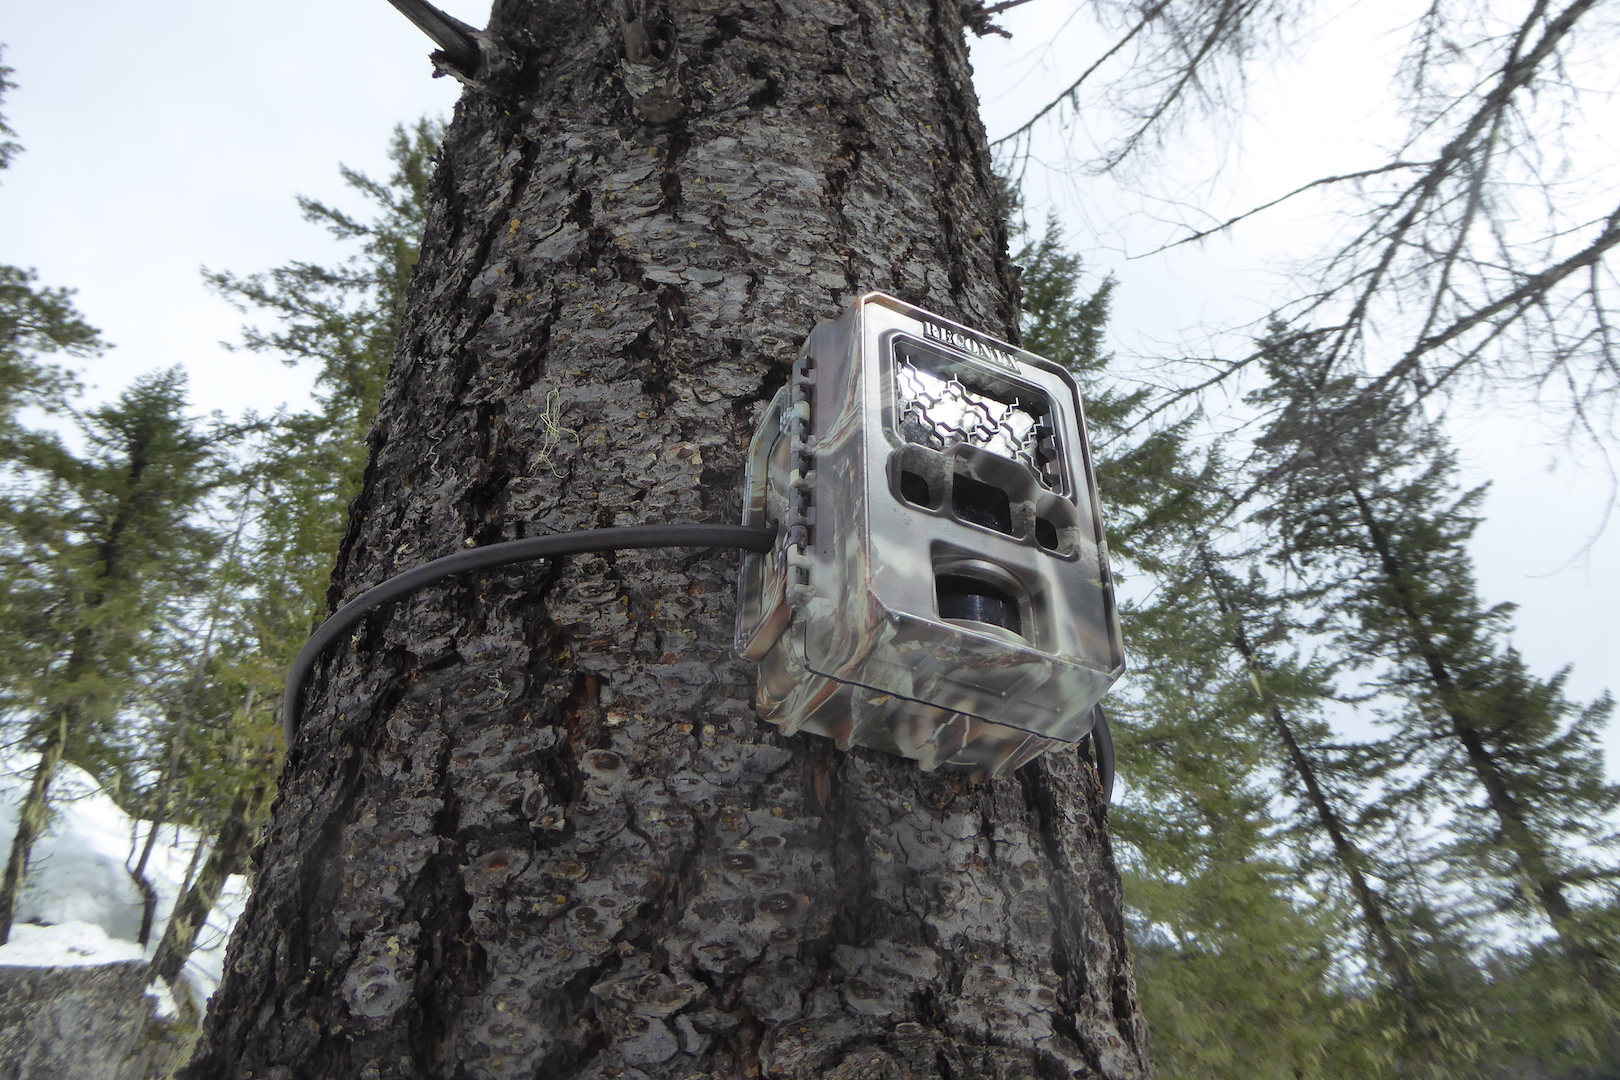 Trail cam mounted on Douglas-fir tree